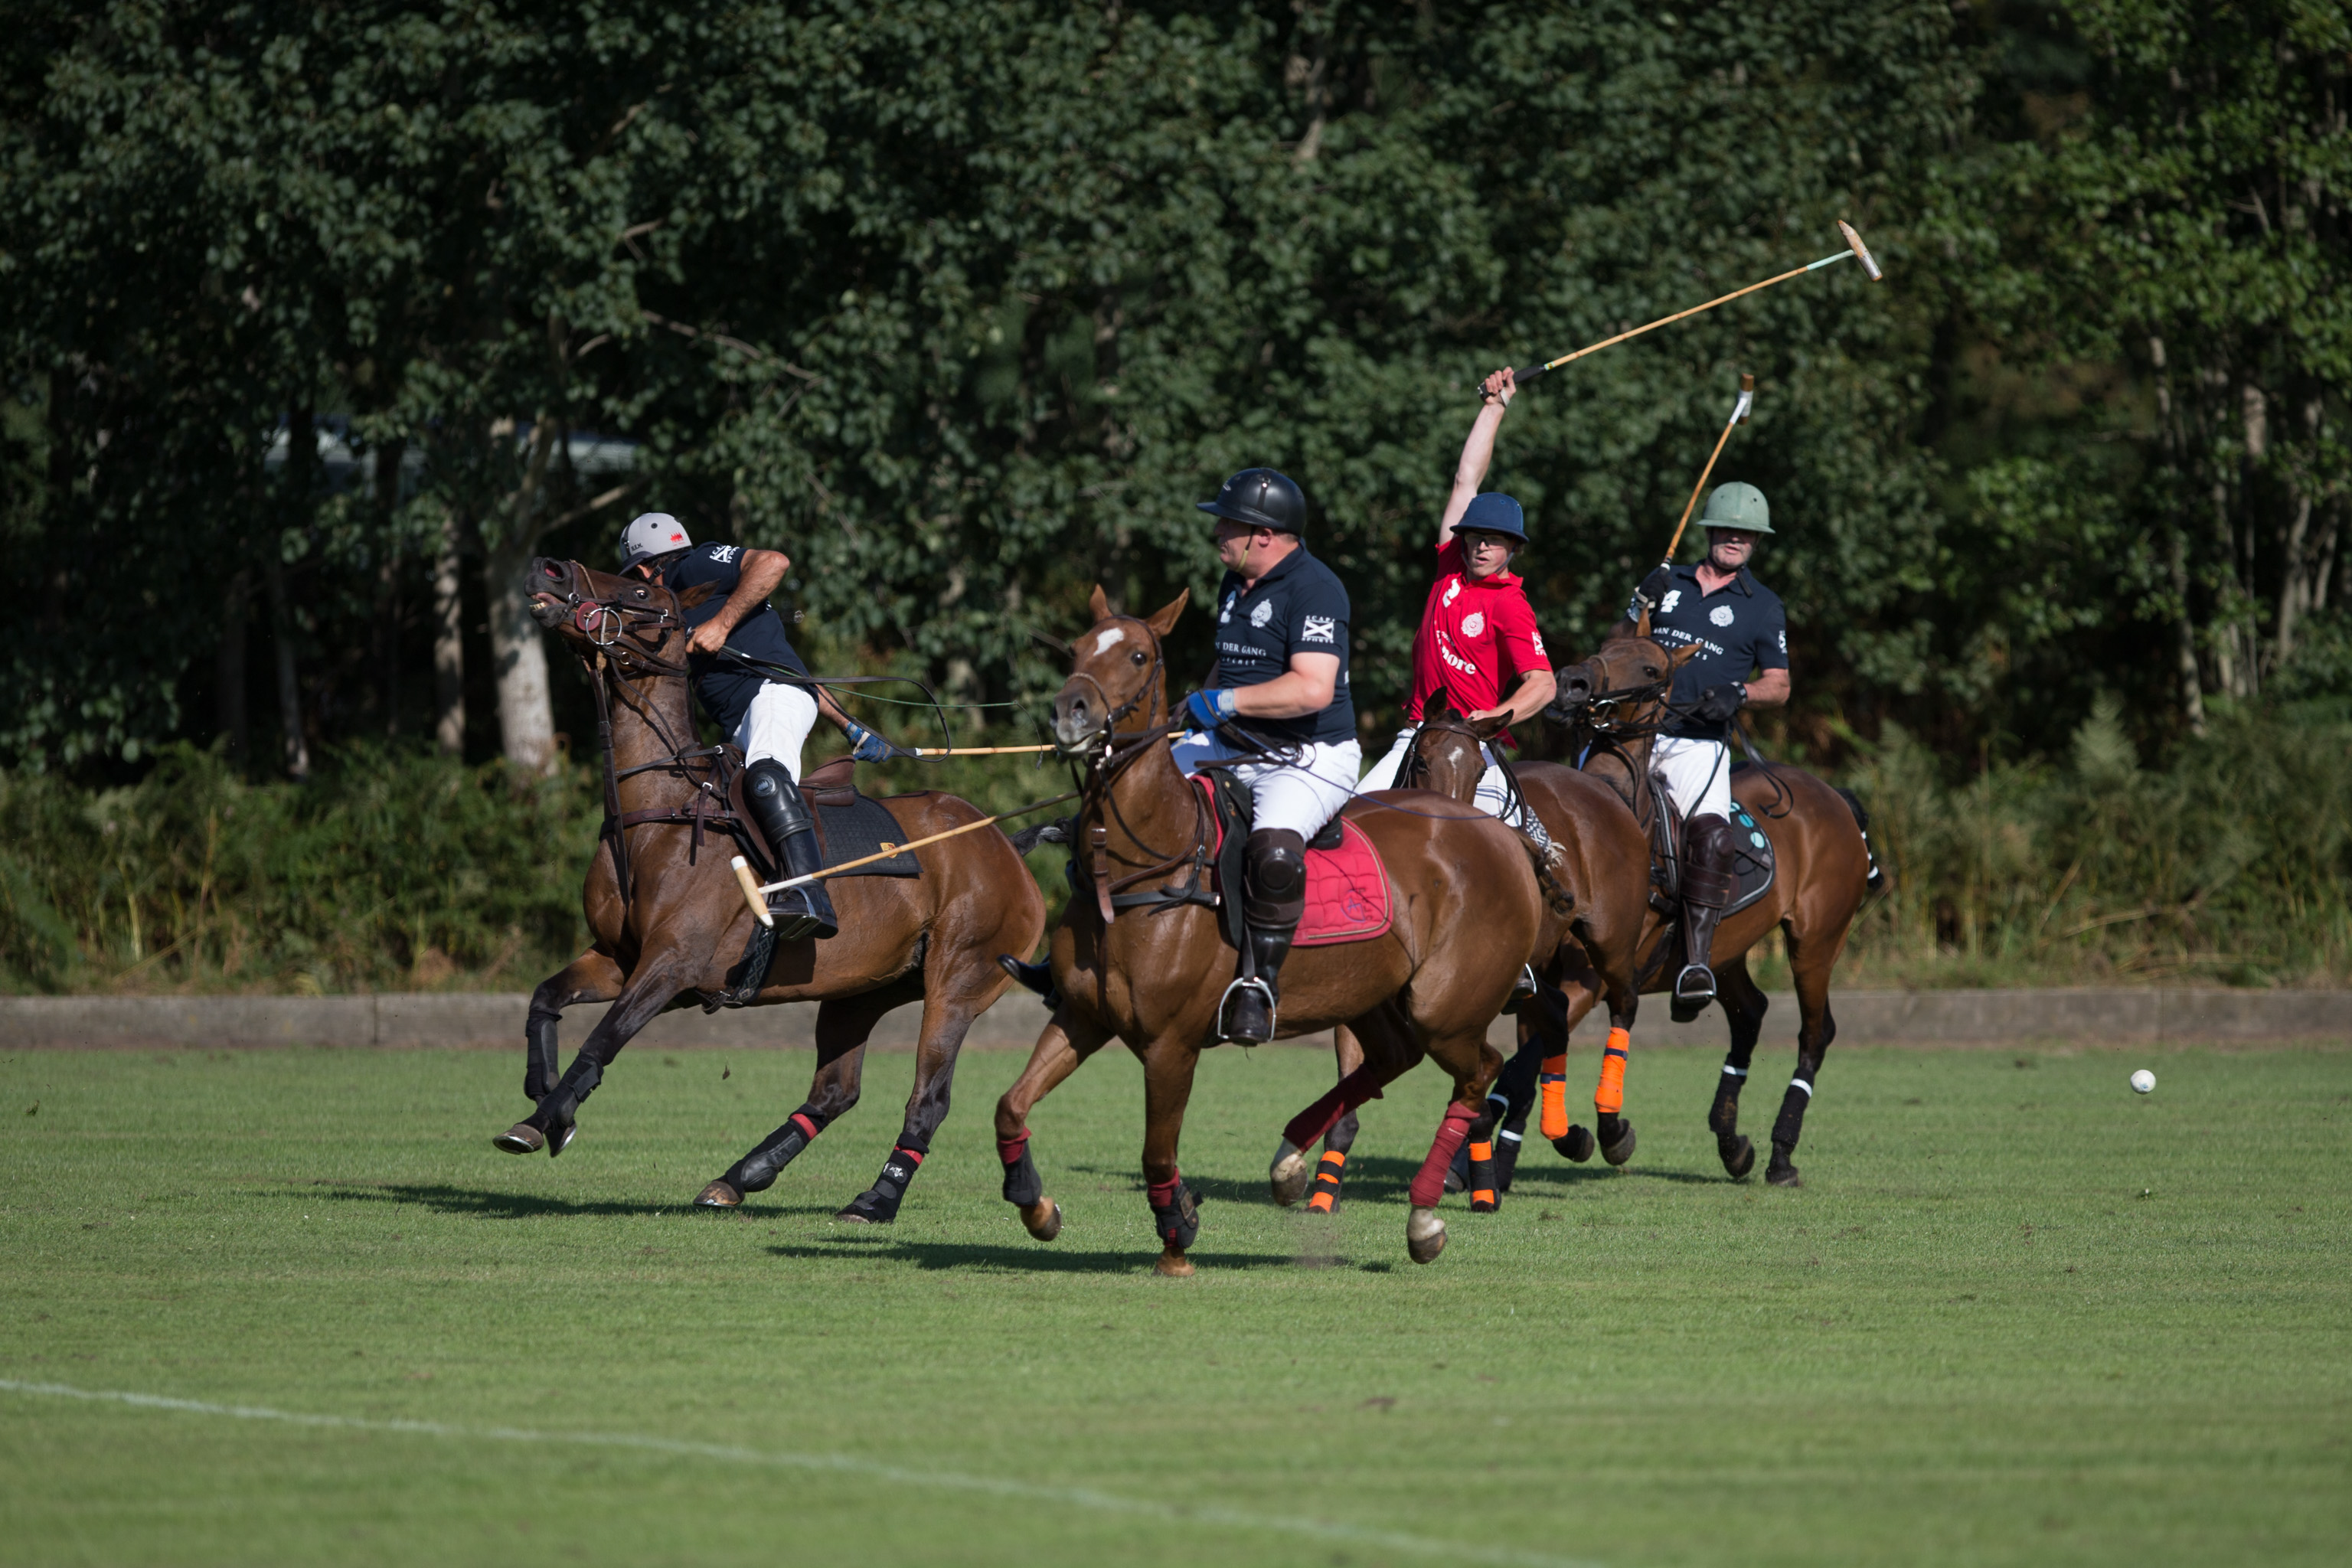 Polo is een actiesport vol adrenaline